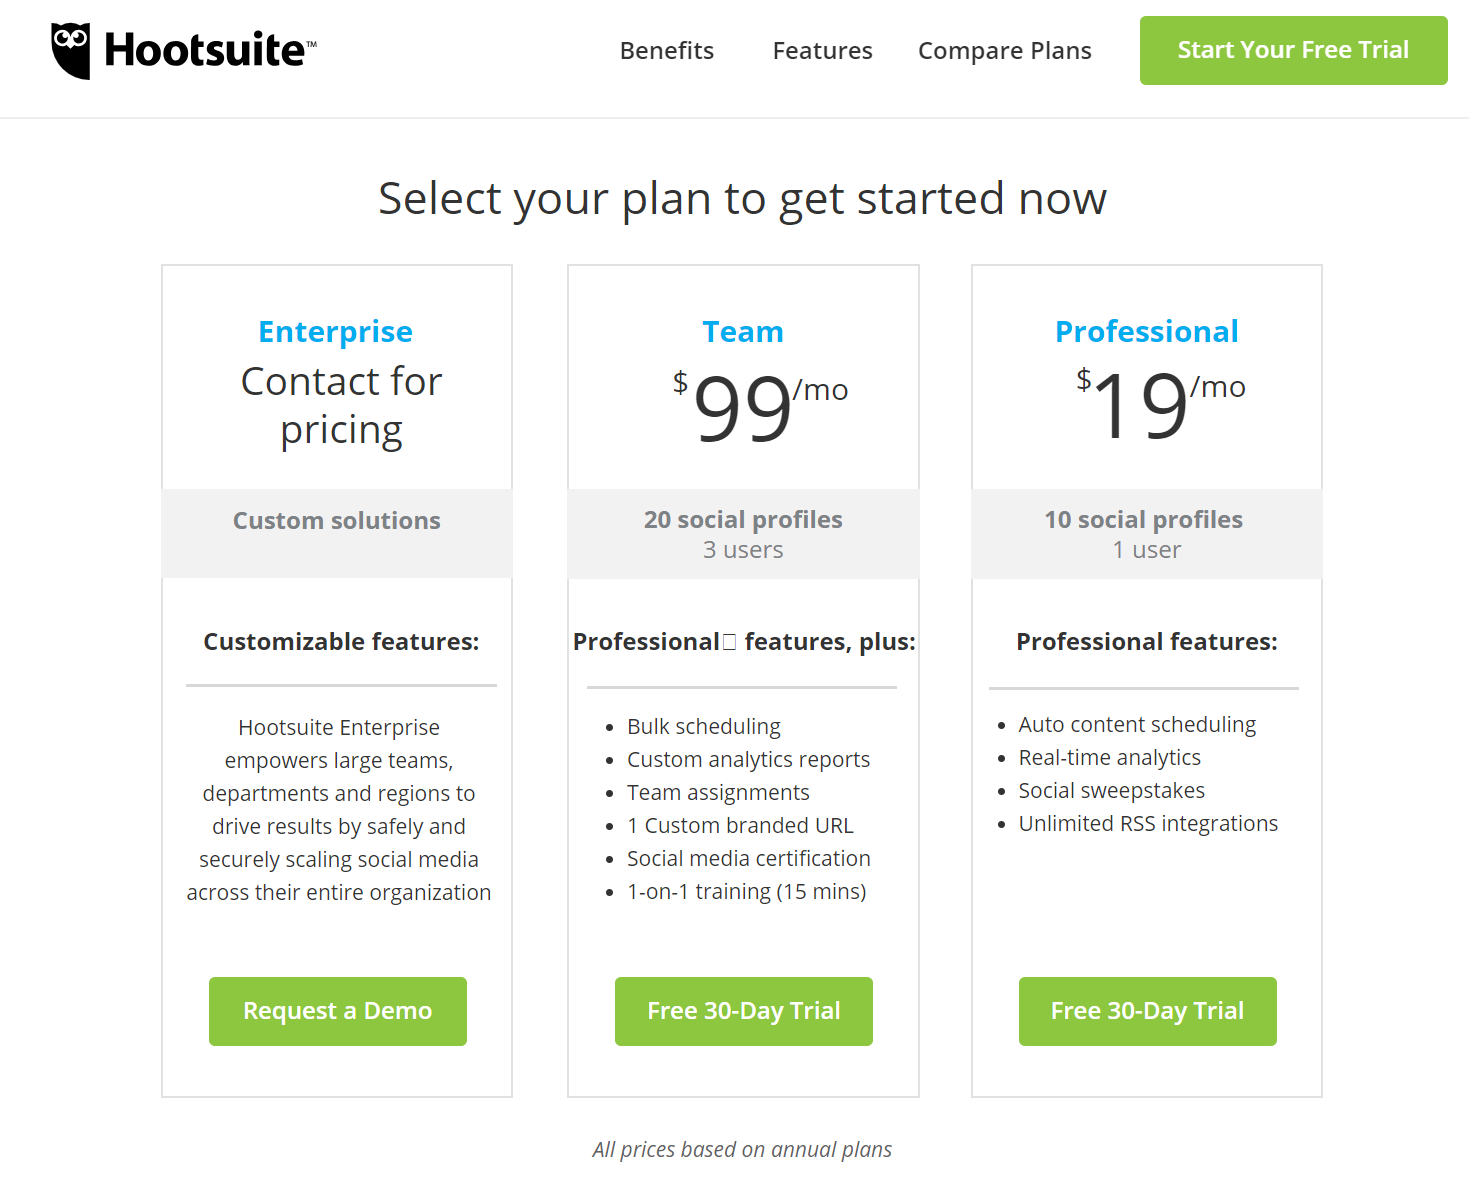 Hootsuite prices